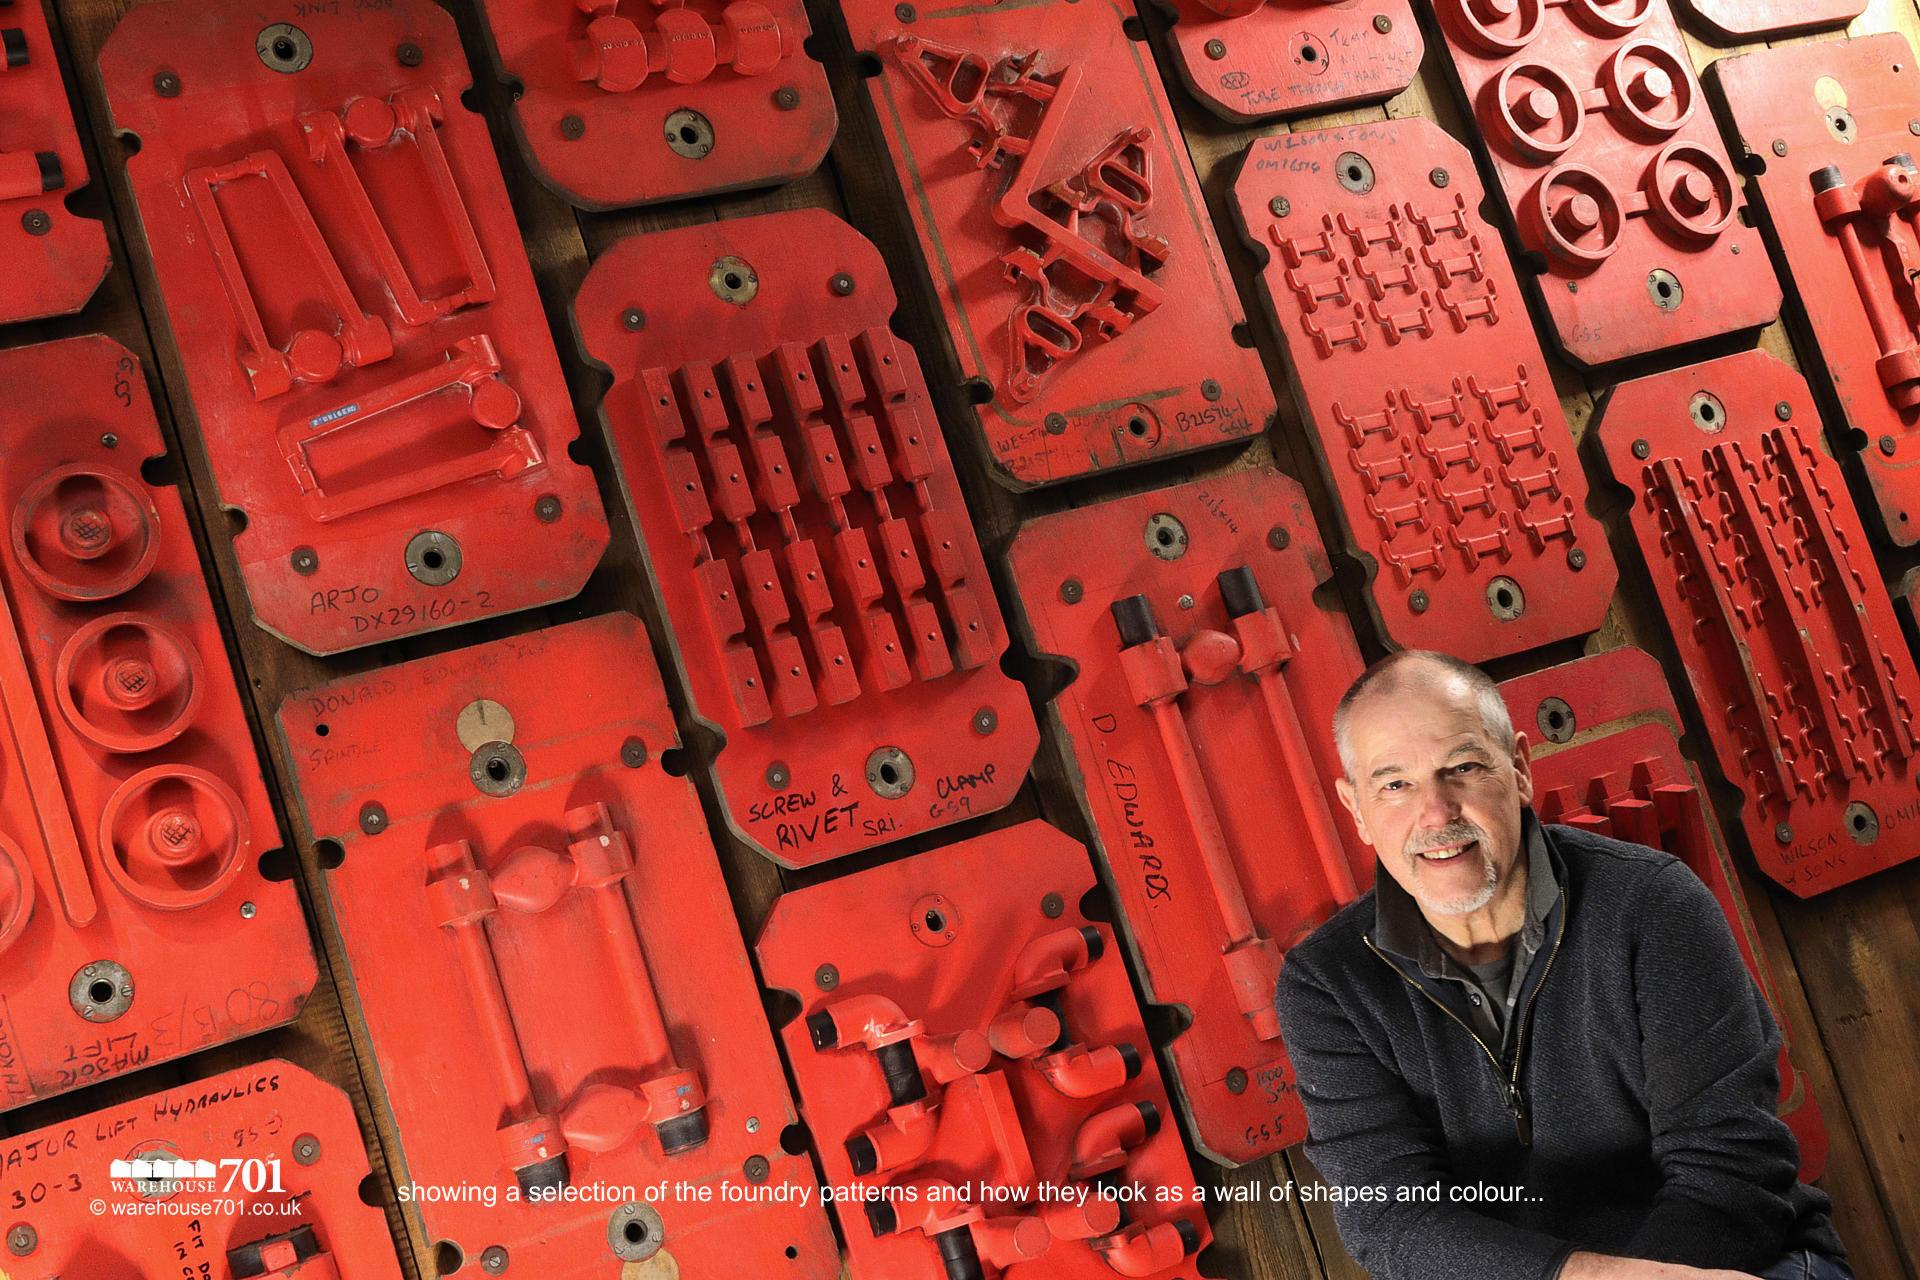 Double-Sided Foundry Patterns or Moulds (No's 25, 26, 27) for Shop, Retail and Home Display #4